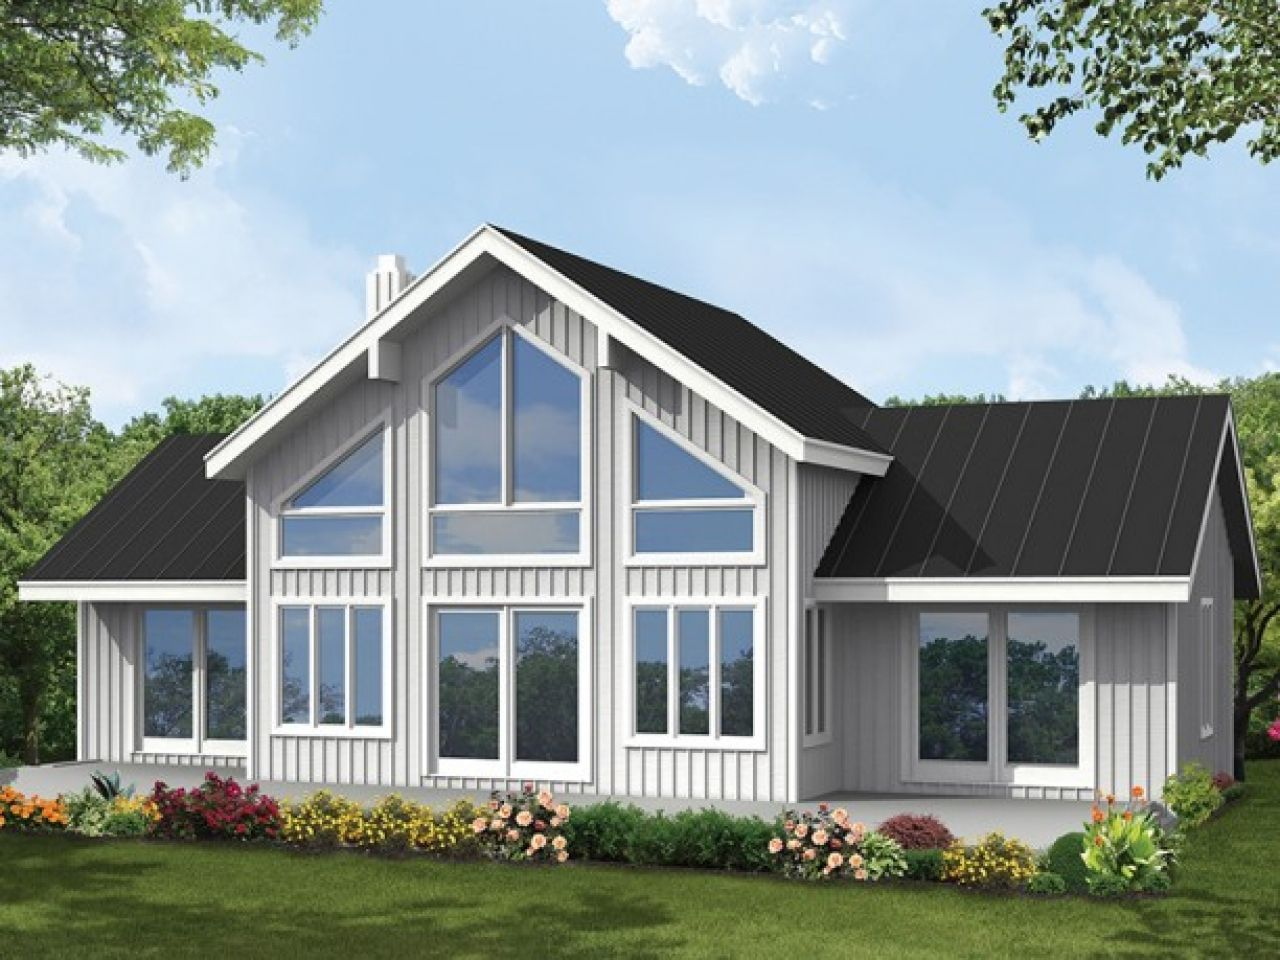 Big window house plans let natural light in 4 bedroom for Large windows for homes